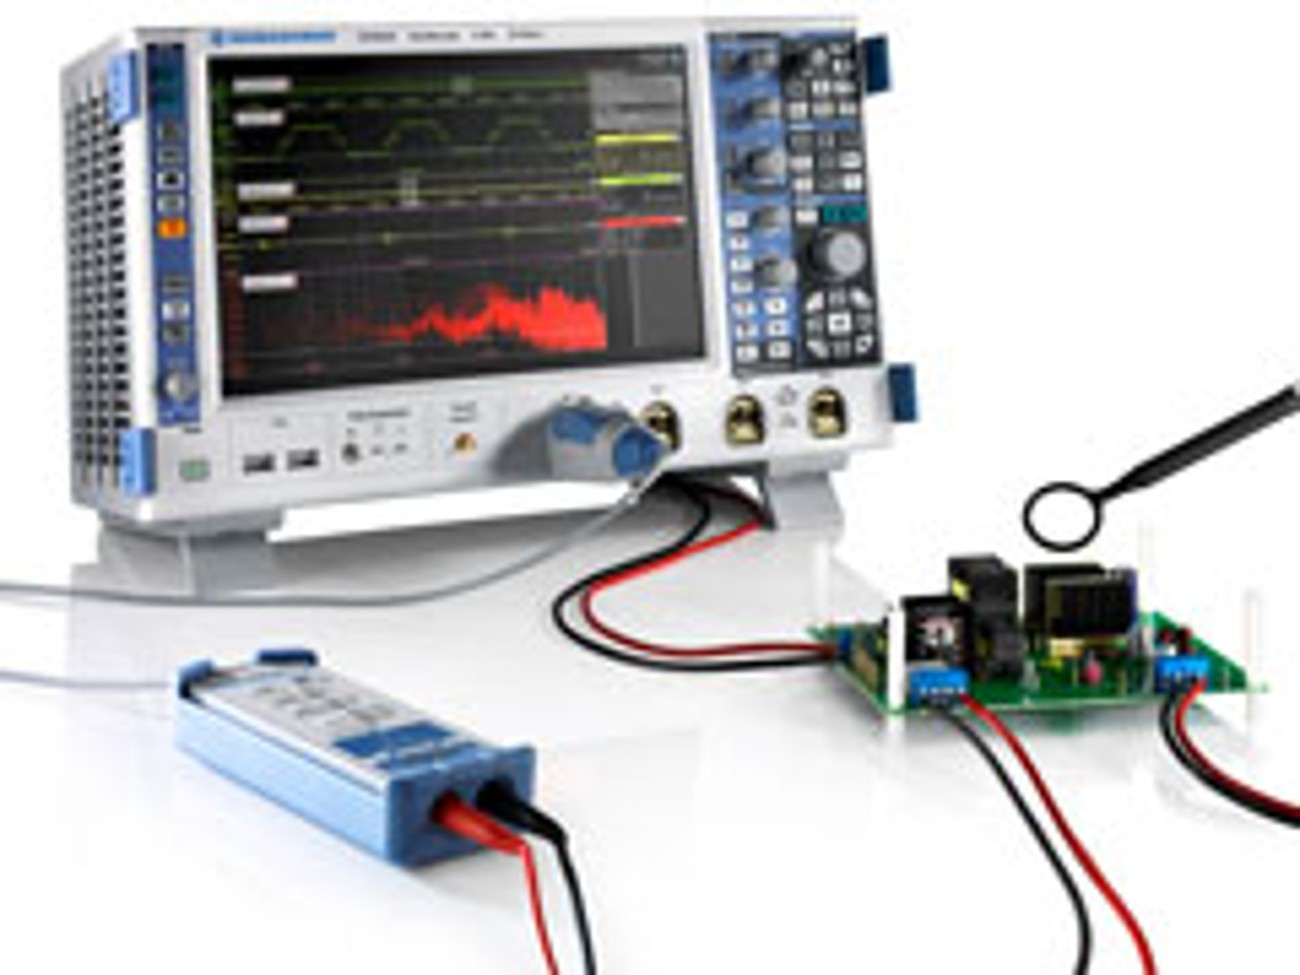 EMI-compliance-oscilloscopes-probing-solutions-enable-EMI-testing_49308_01_01.jpg